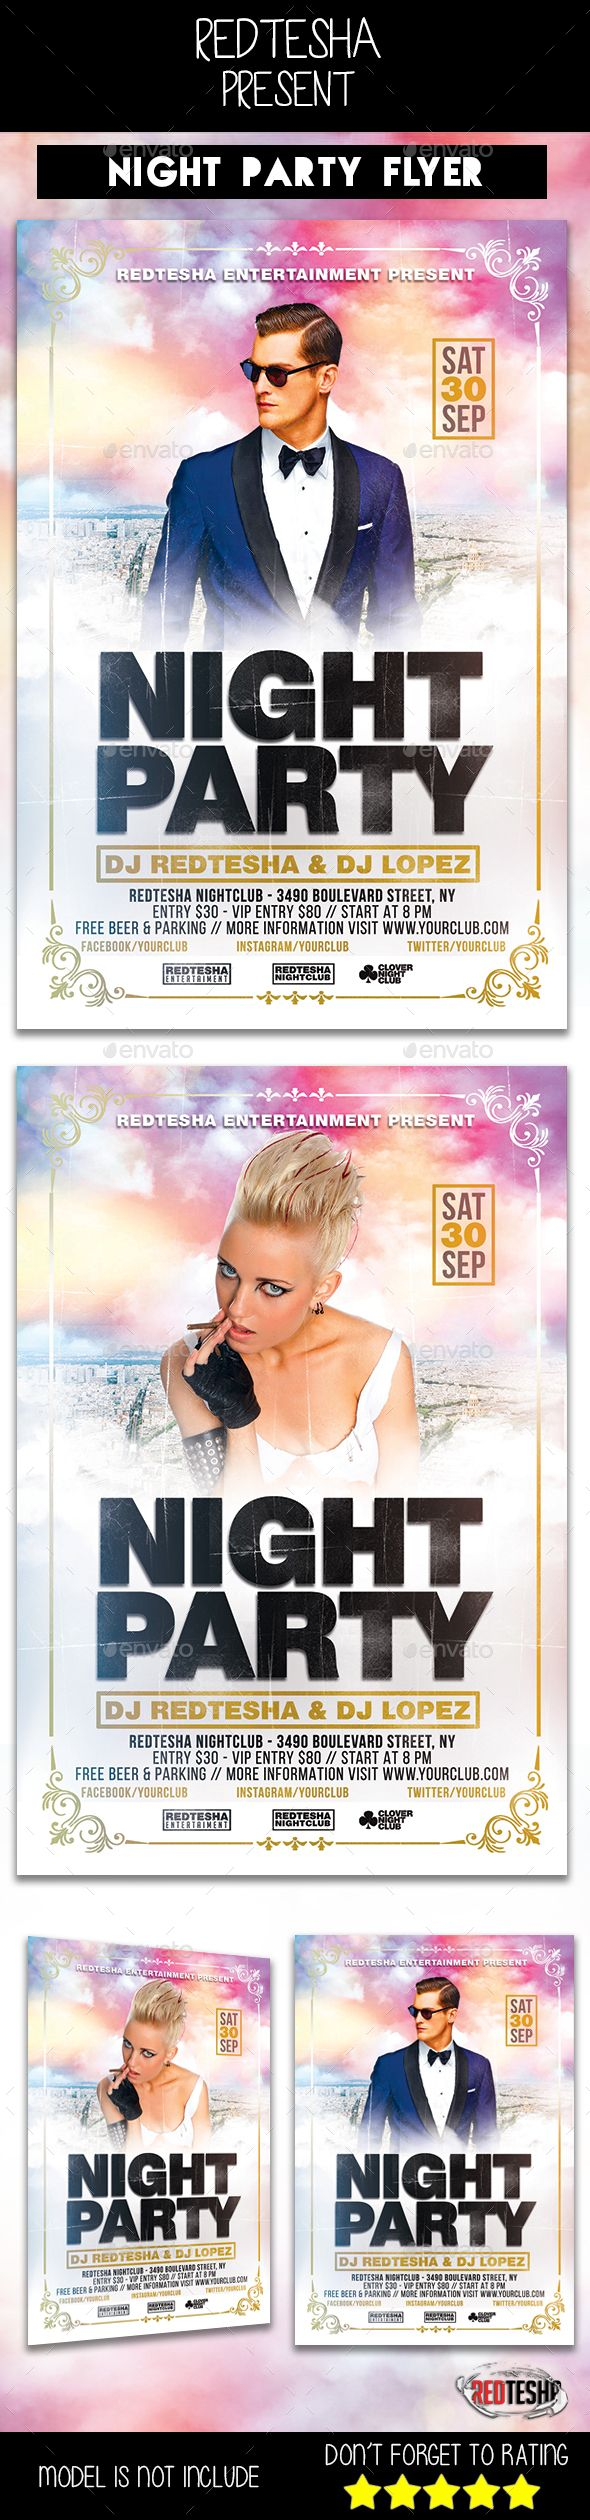 #Night Club #Flyer - Clubs & Parties #Events Download here: https://graphicriver.net/item/night-club-flyer/19531409?ref=alena994